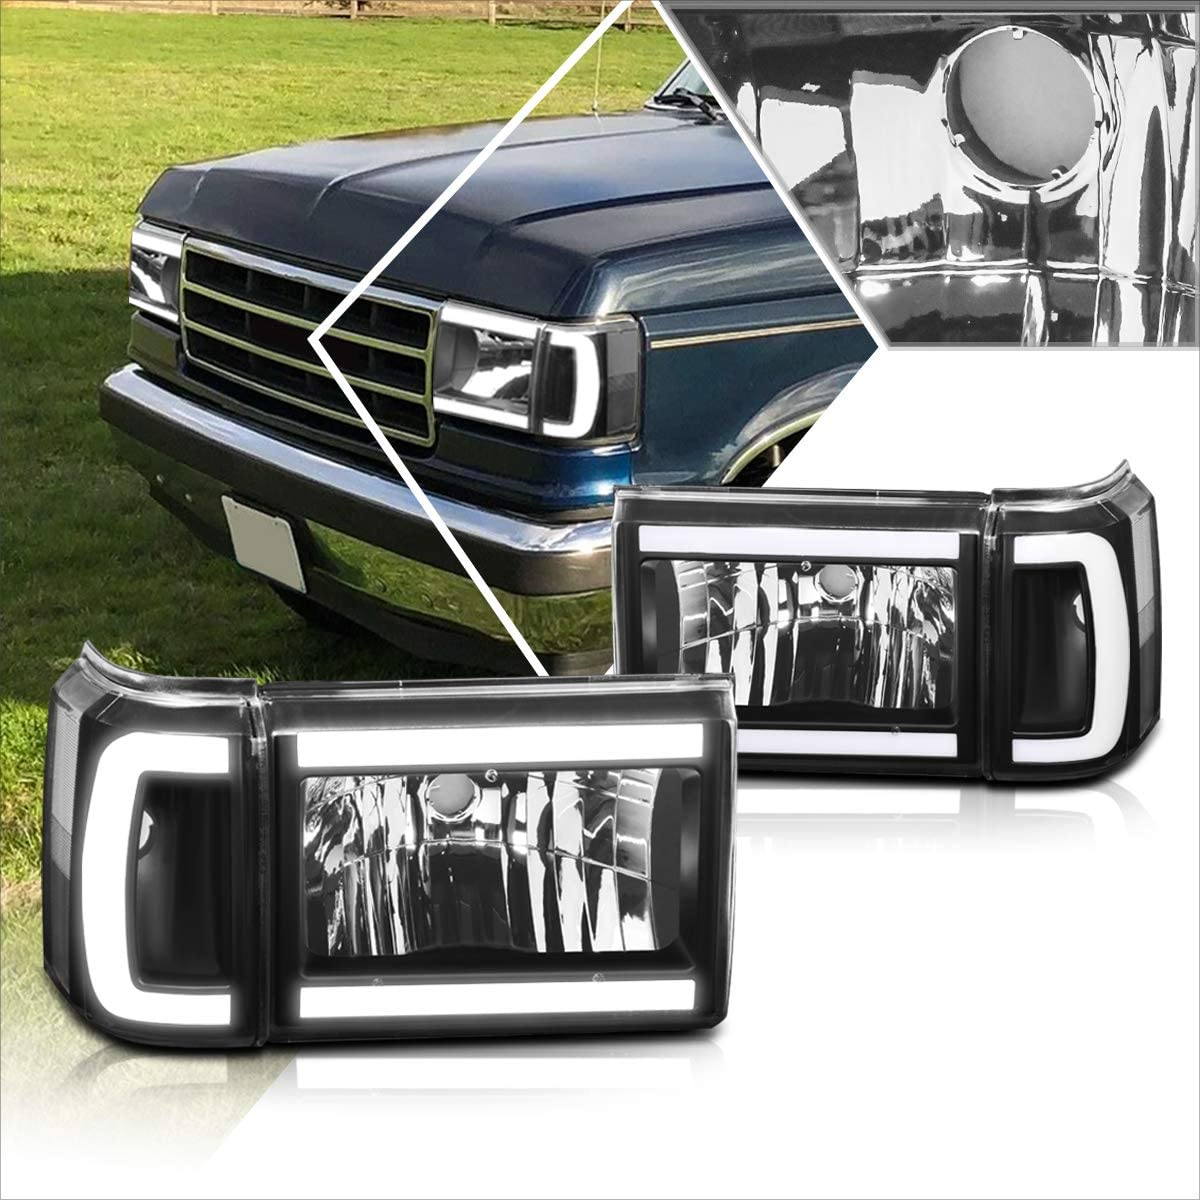 2Pcs LED Max 79% OFF DRL Headlight National uniform free shipping Headlamp 87-91 Assembly with Compatible